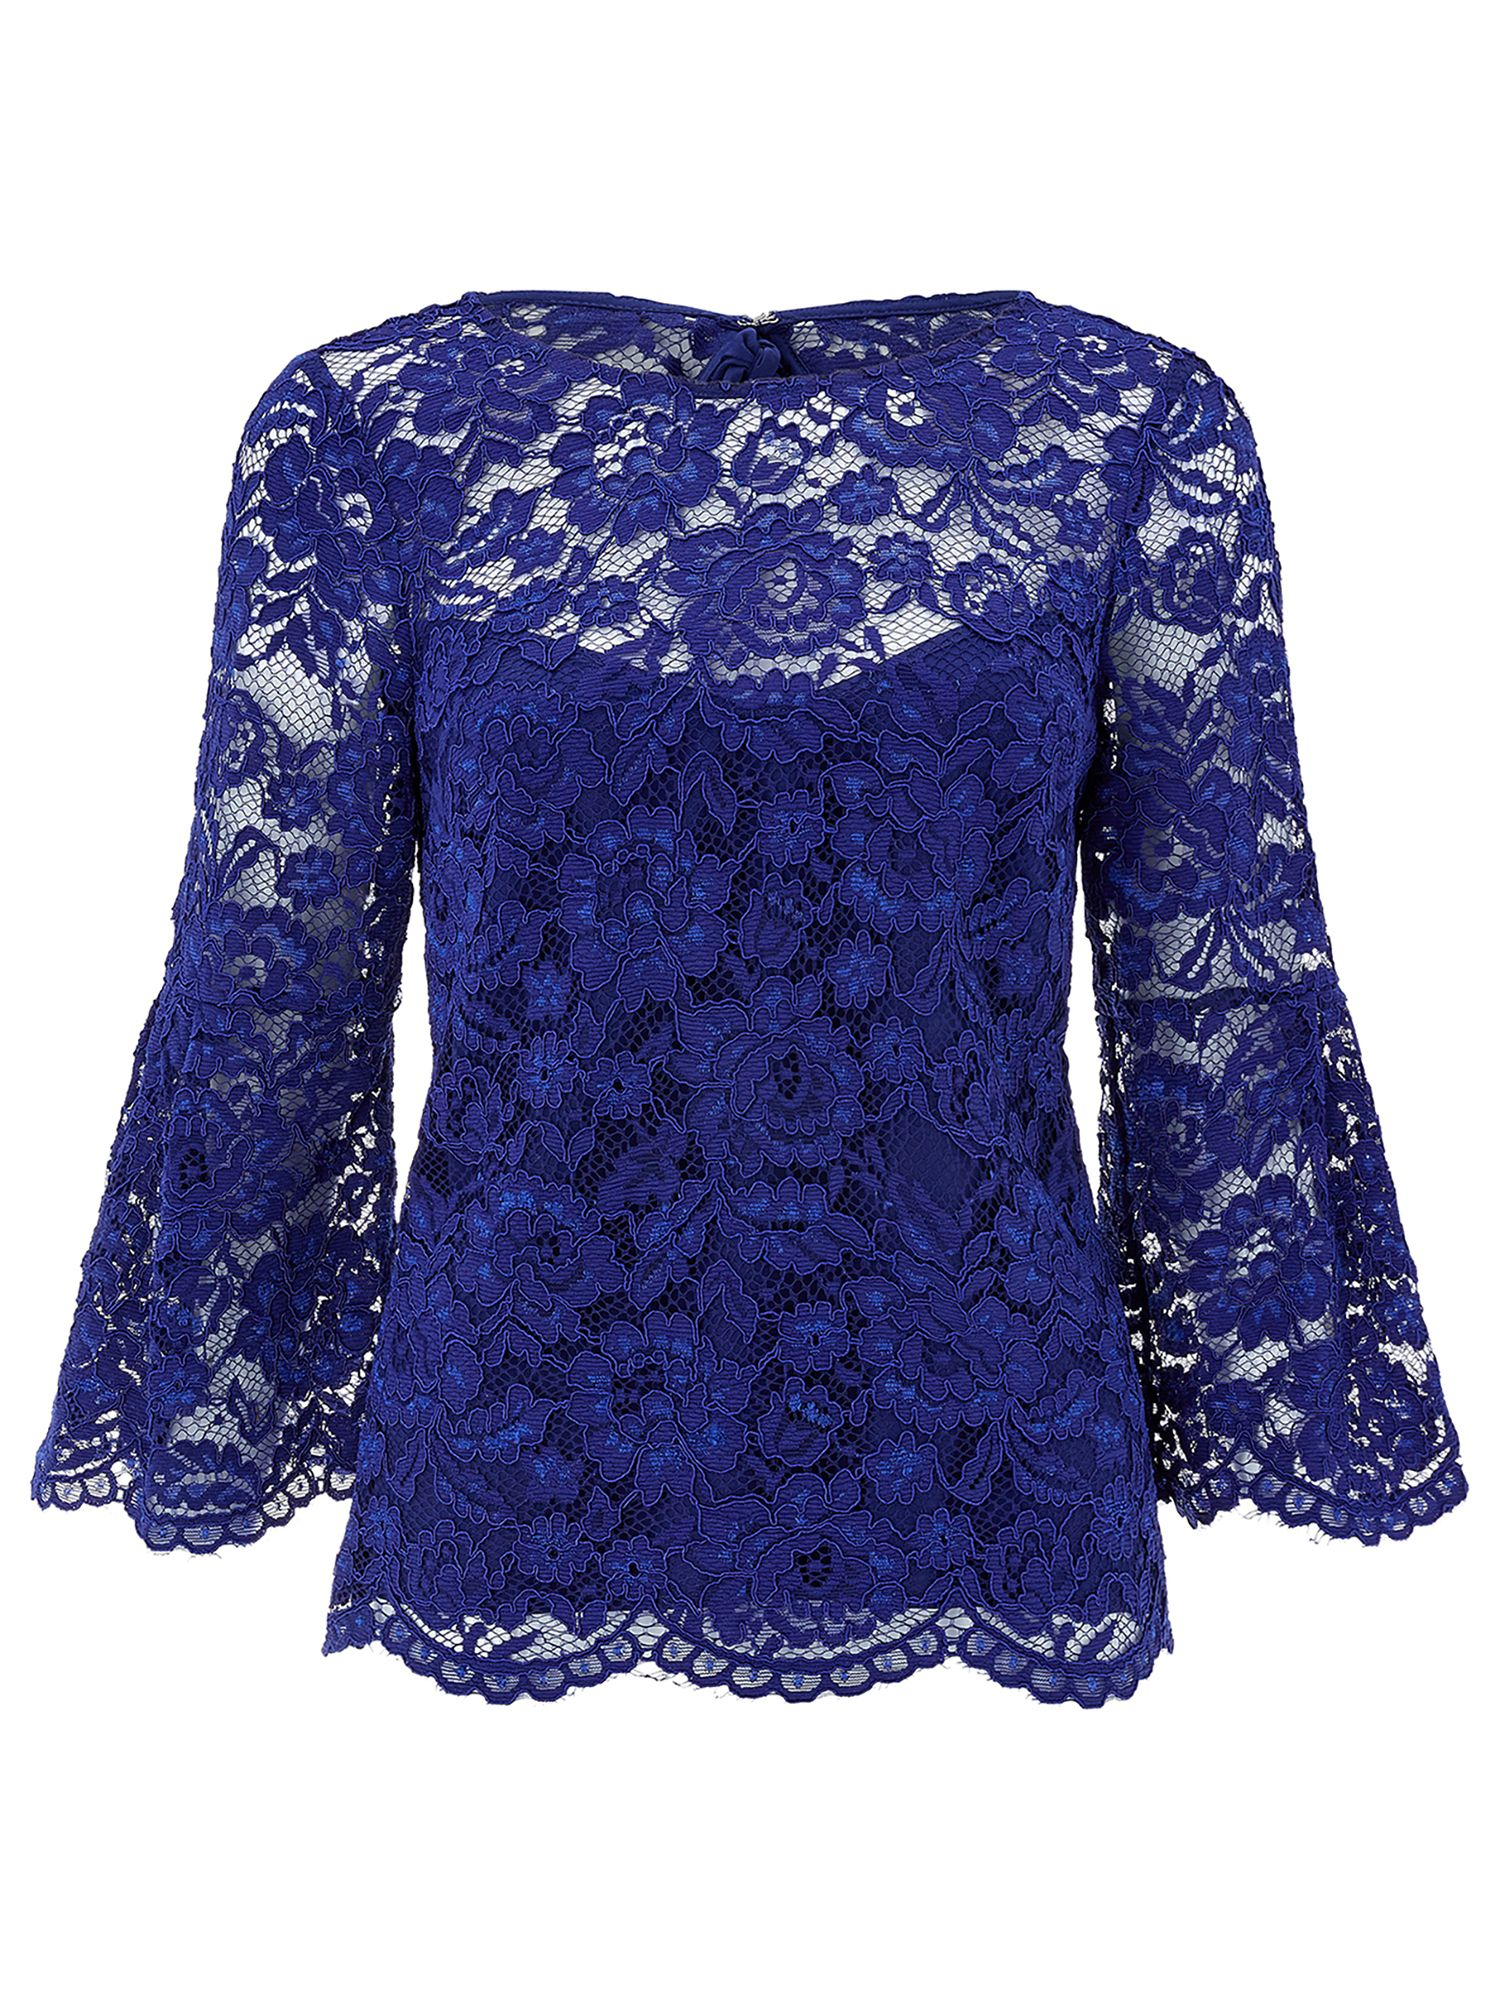 Monsoon Lana Lace Top, Cobalt